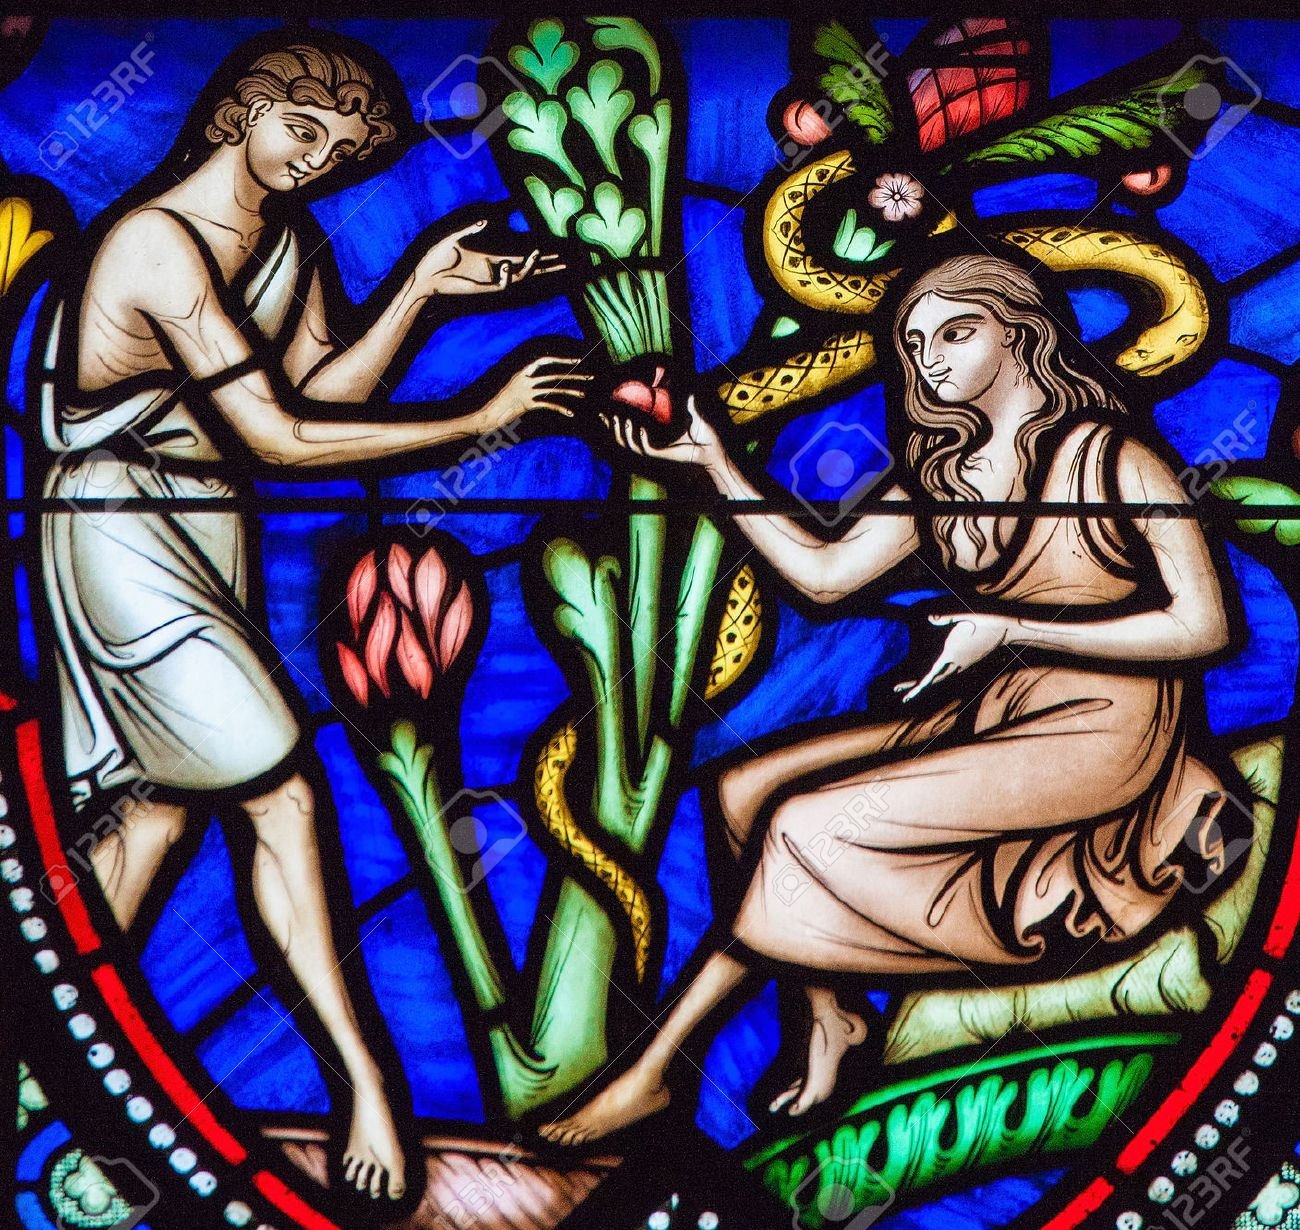 BRUSSELS, BELGIUM - JULY 26, 2012: Adam and Eve eating the Forbidden Fruit in the Garden of Eden on a stained glass window in the cathedral of Brussels. - 54680925